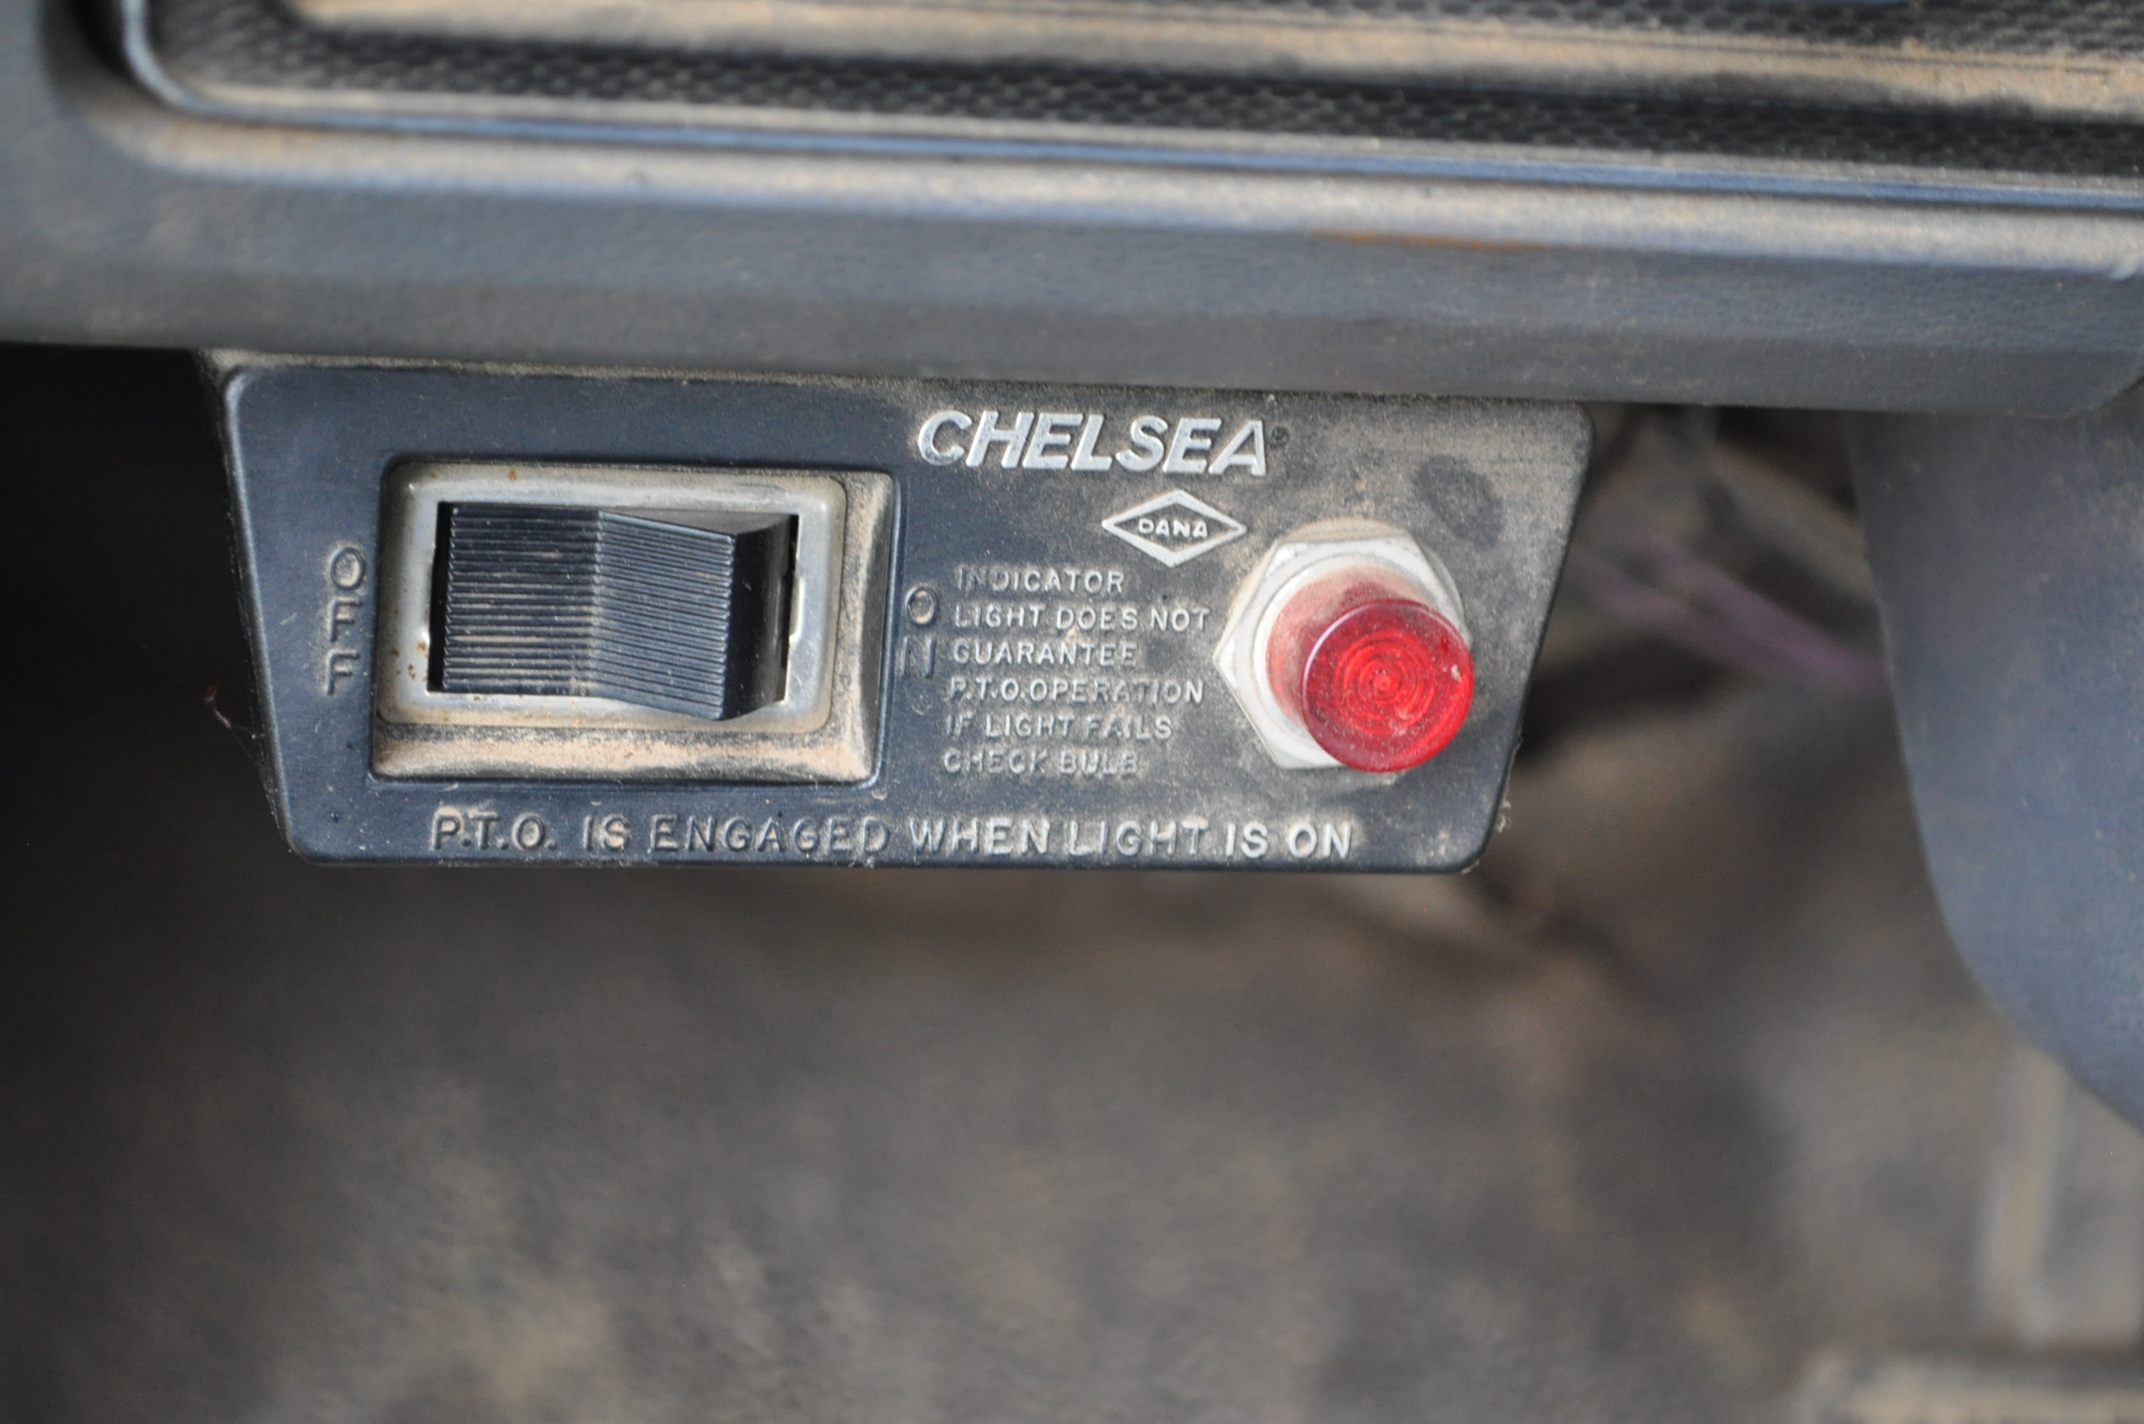 1988 Ford F800 grain truck, single axle, 427 V-8, auto, 11 R 22.5 tires, 16' Omaha Standard bed, - Image 16 of 17